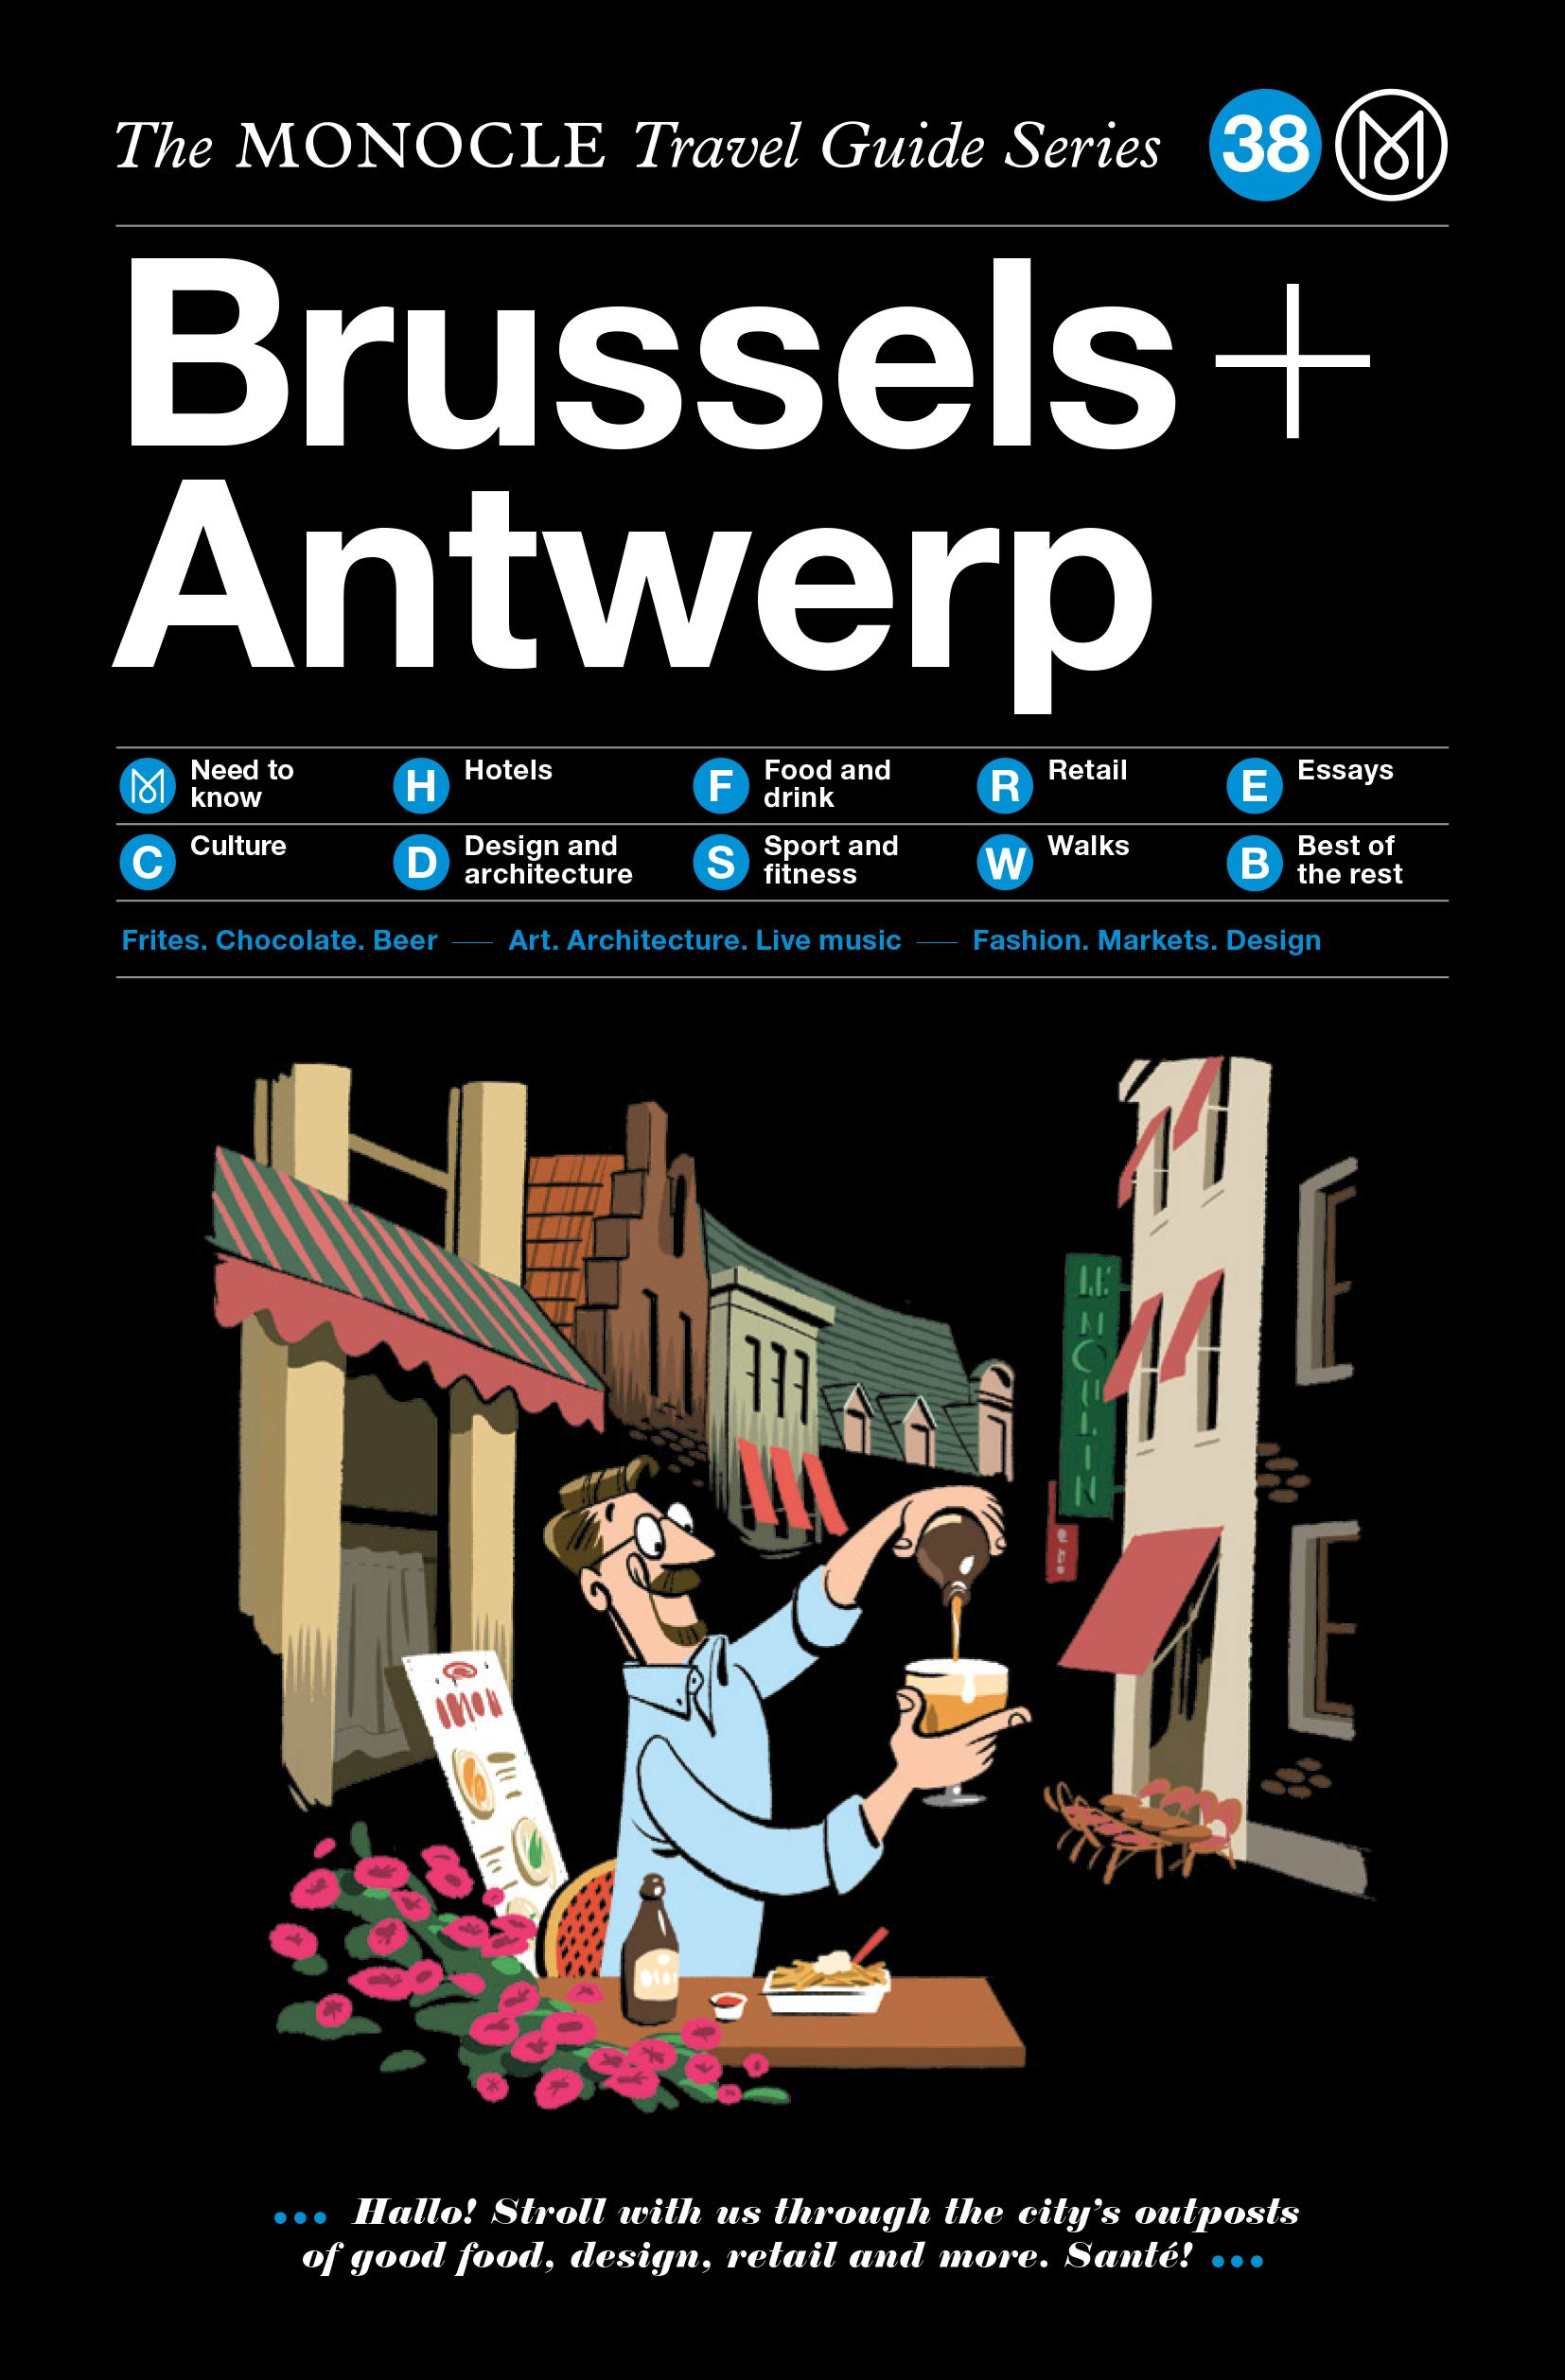 The Monocle Travel Guide To Brussels And Antwerp  The Monocle Travel Guide Series